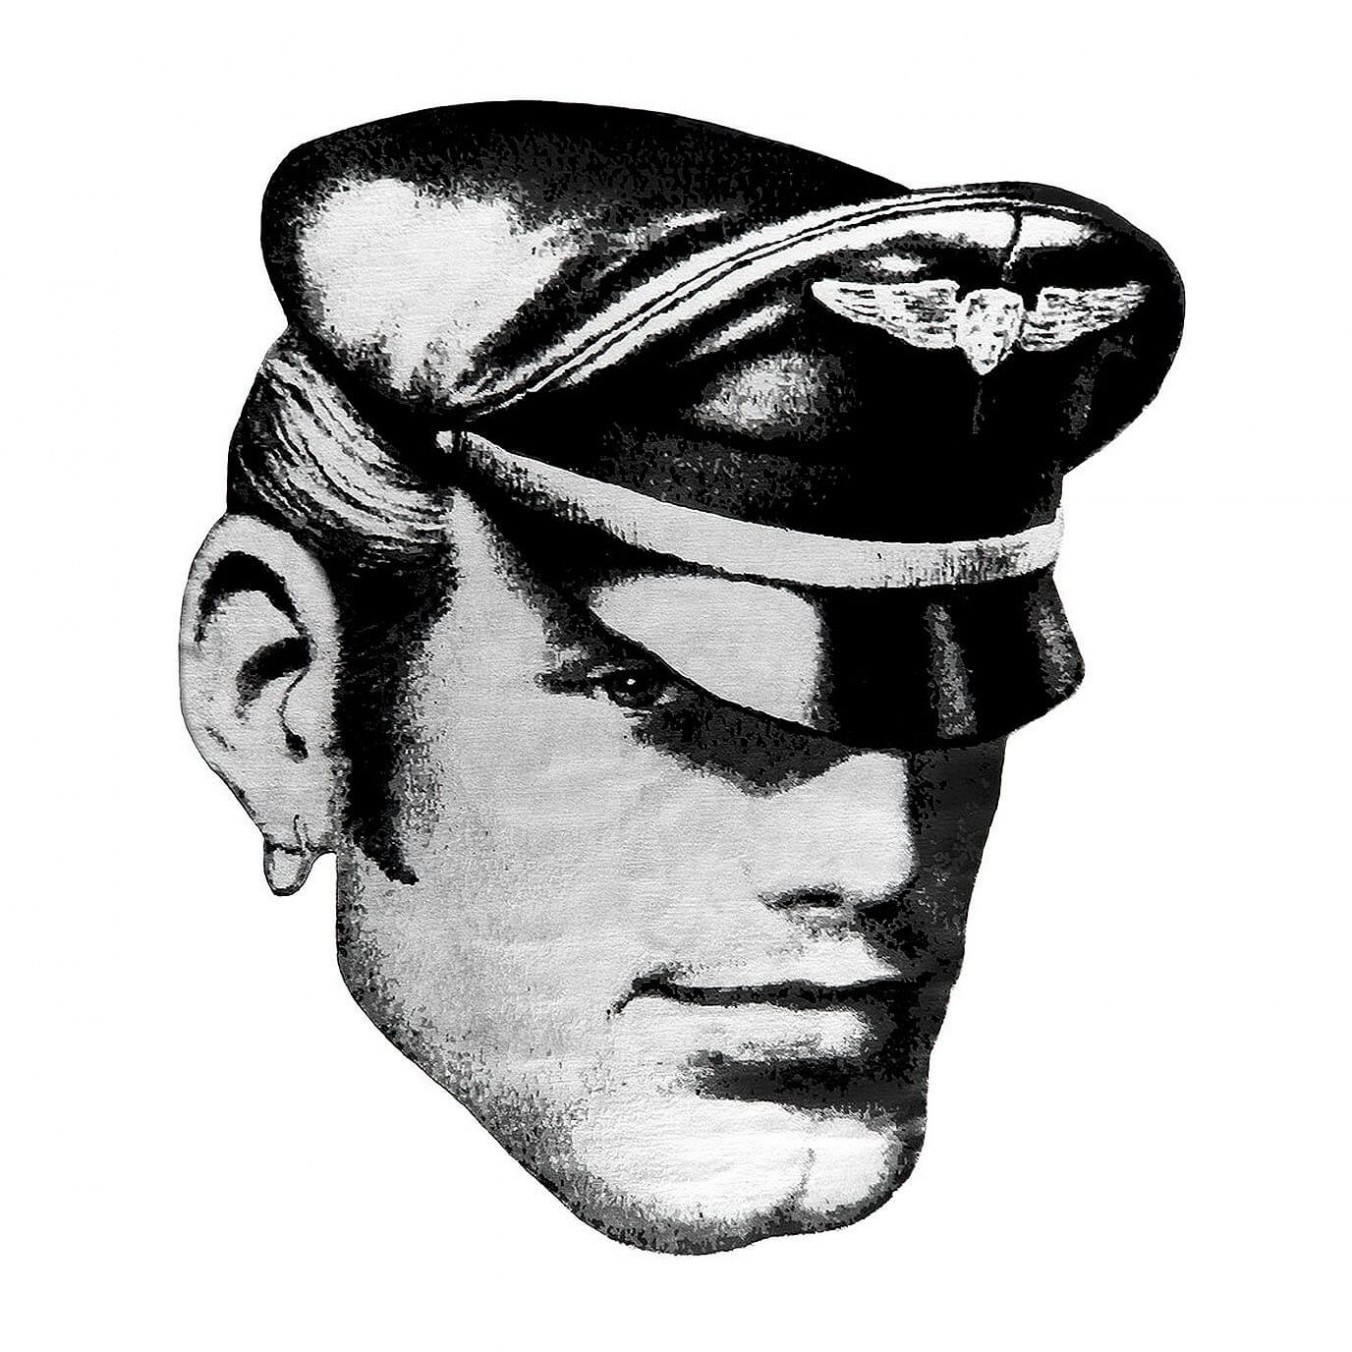 TOM OF FINLAND - Untitled, 1978